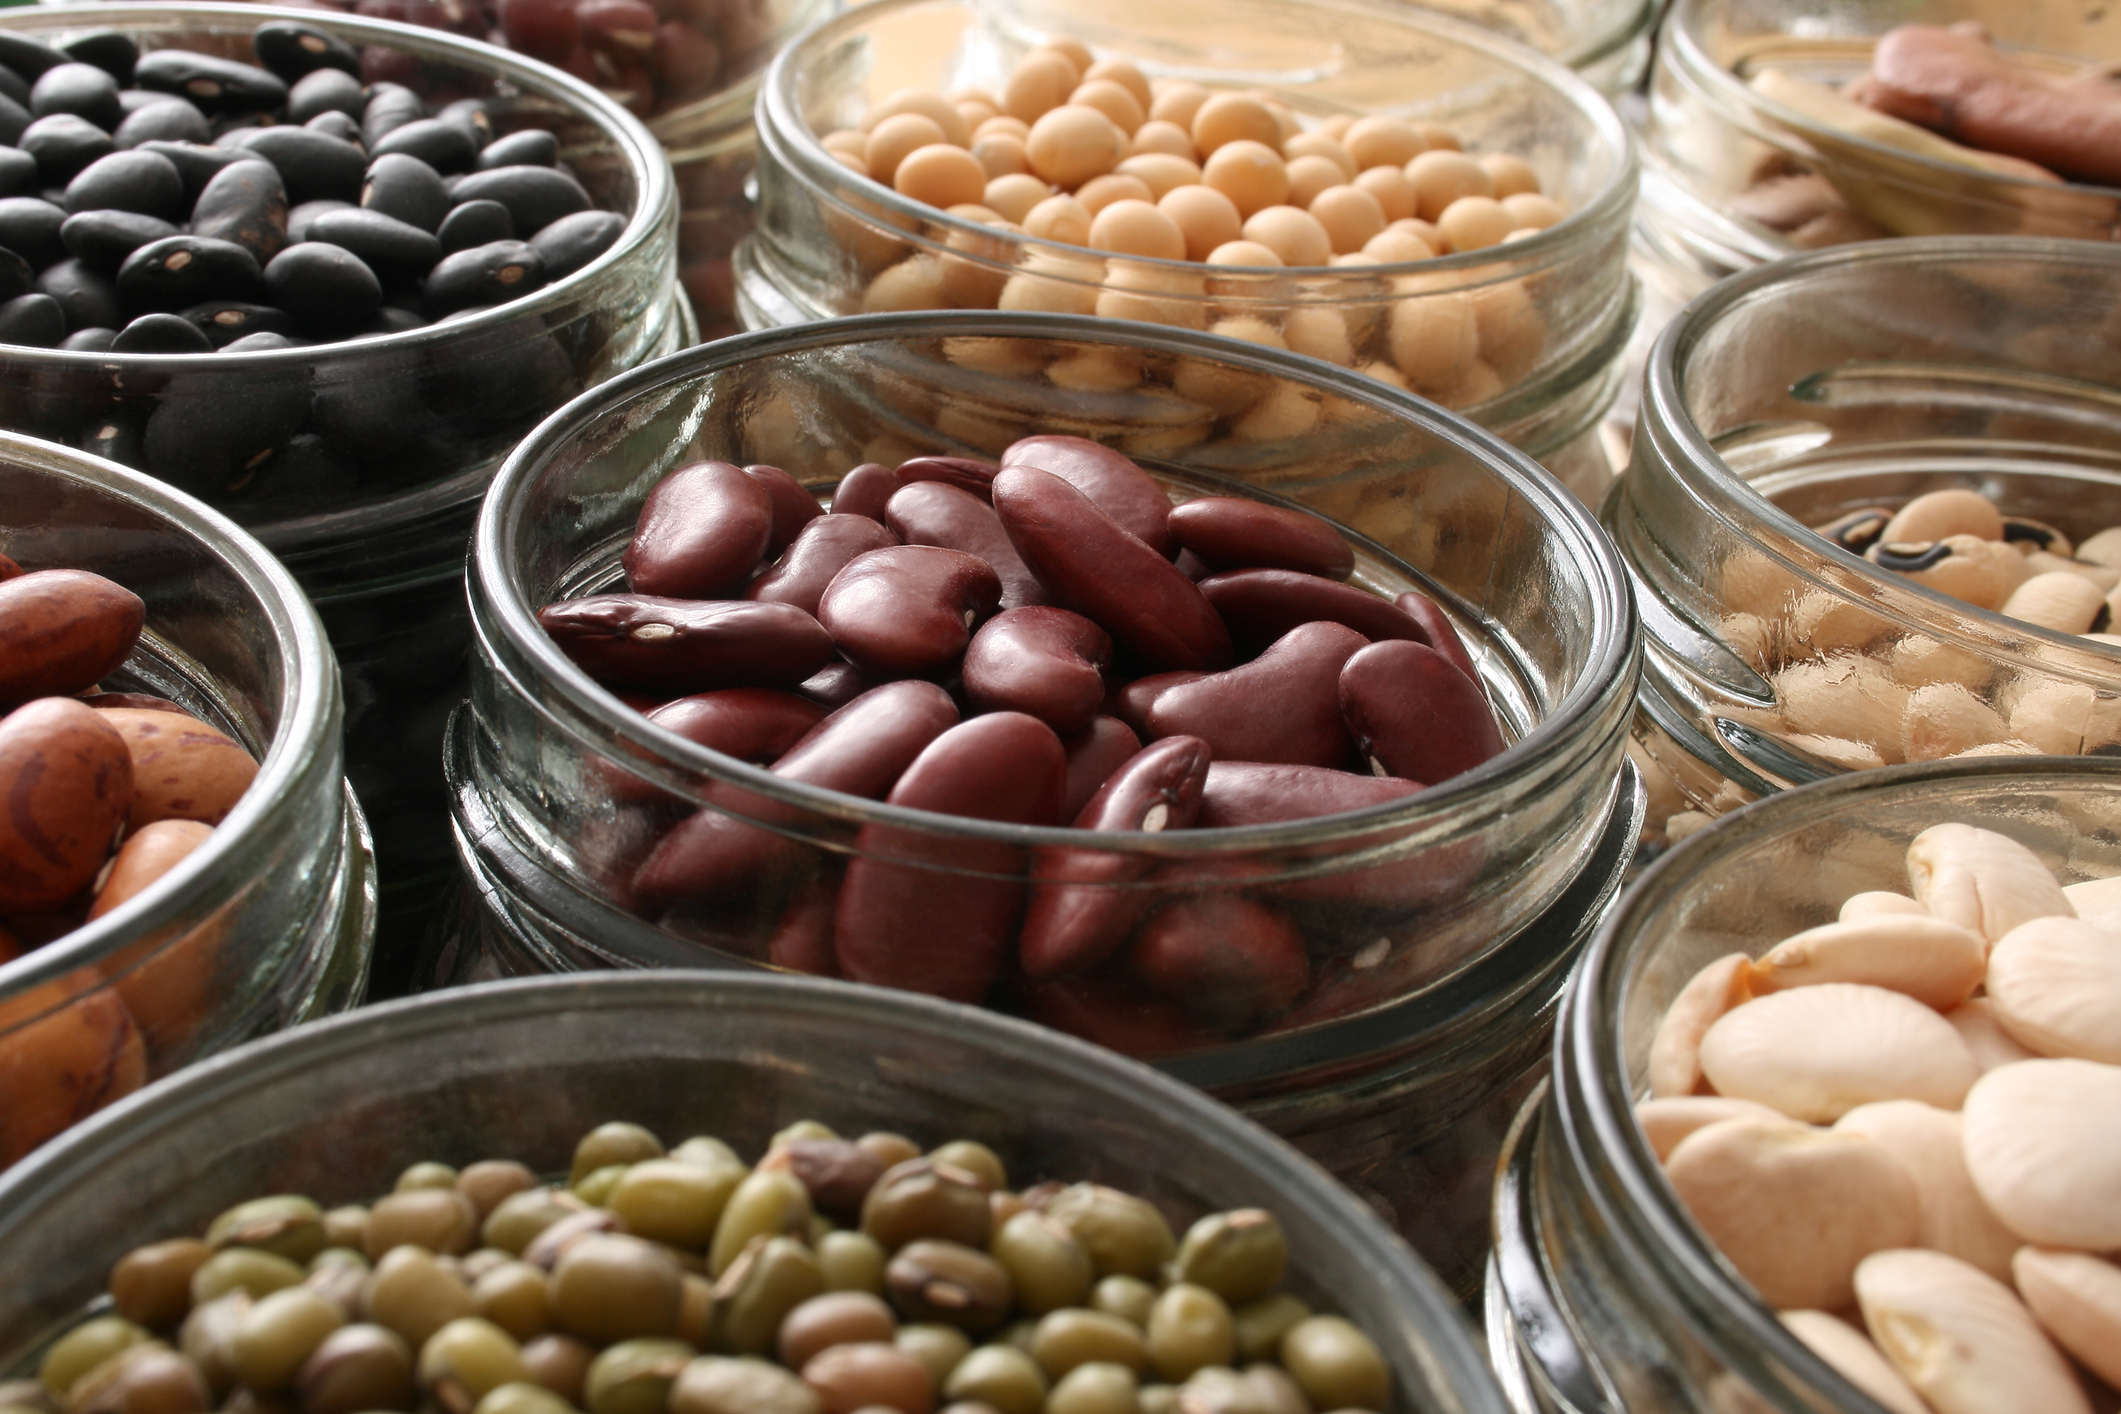 Variety of beans inside jars. Shallow depth of field